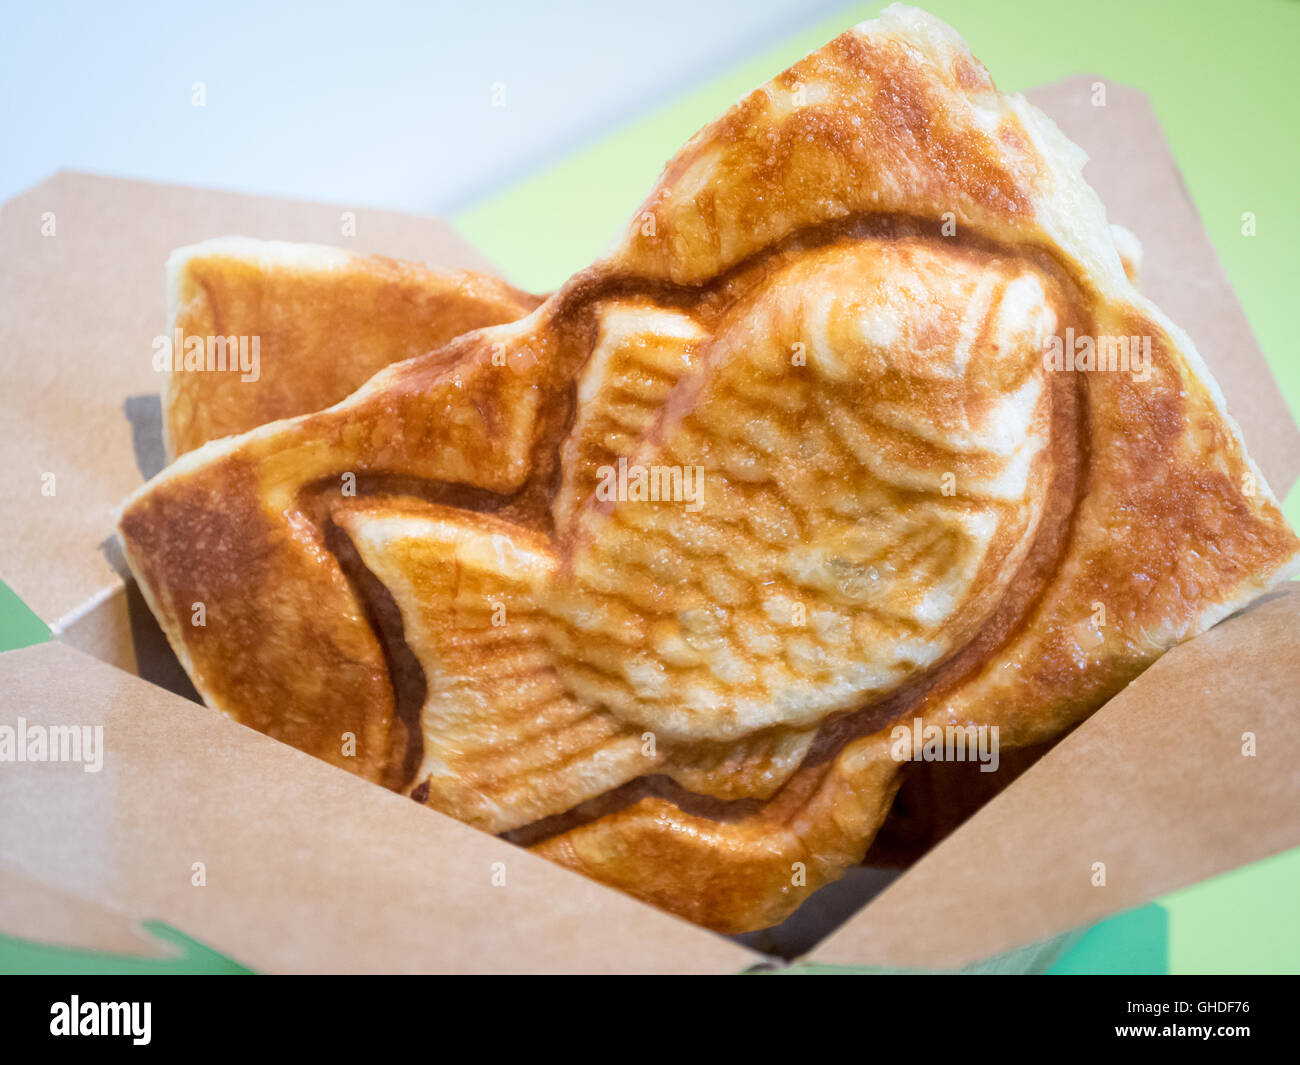 A taiyaki, a Japanese fish-shaped cake filled with red bean paste, from Snowy Village Dessert Cafe in Vancouver, - Stock Image